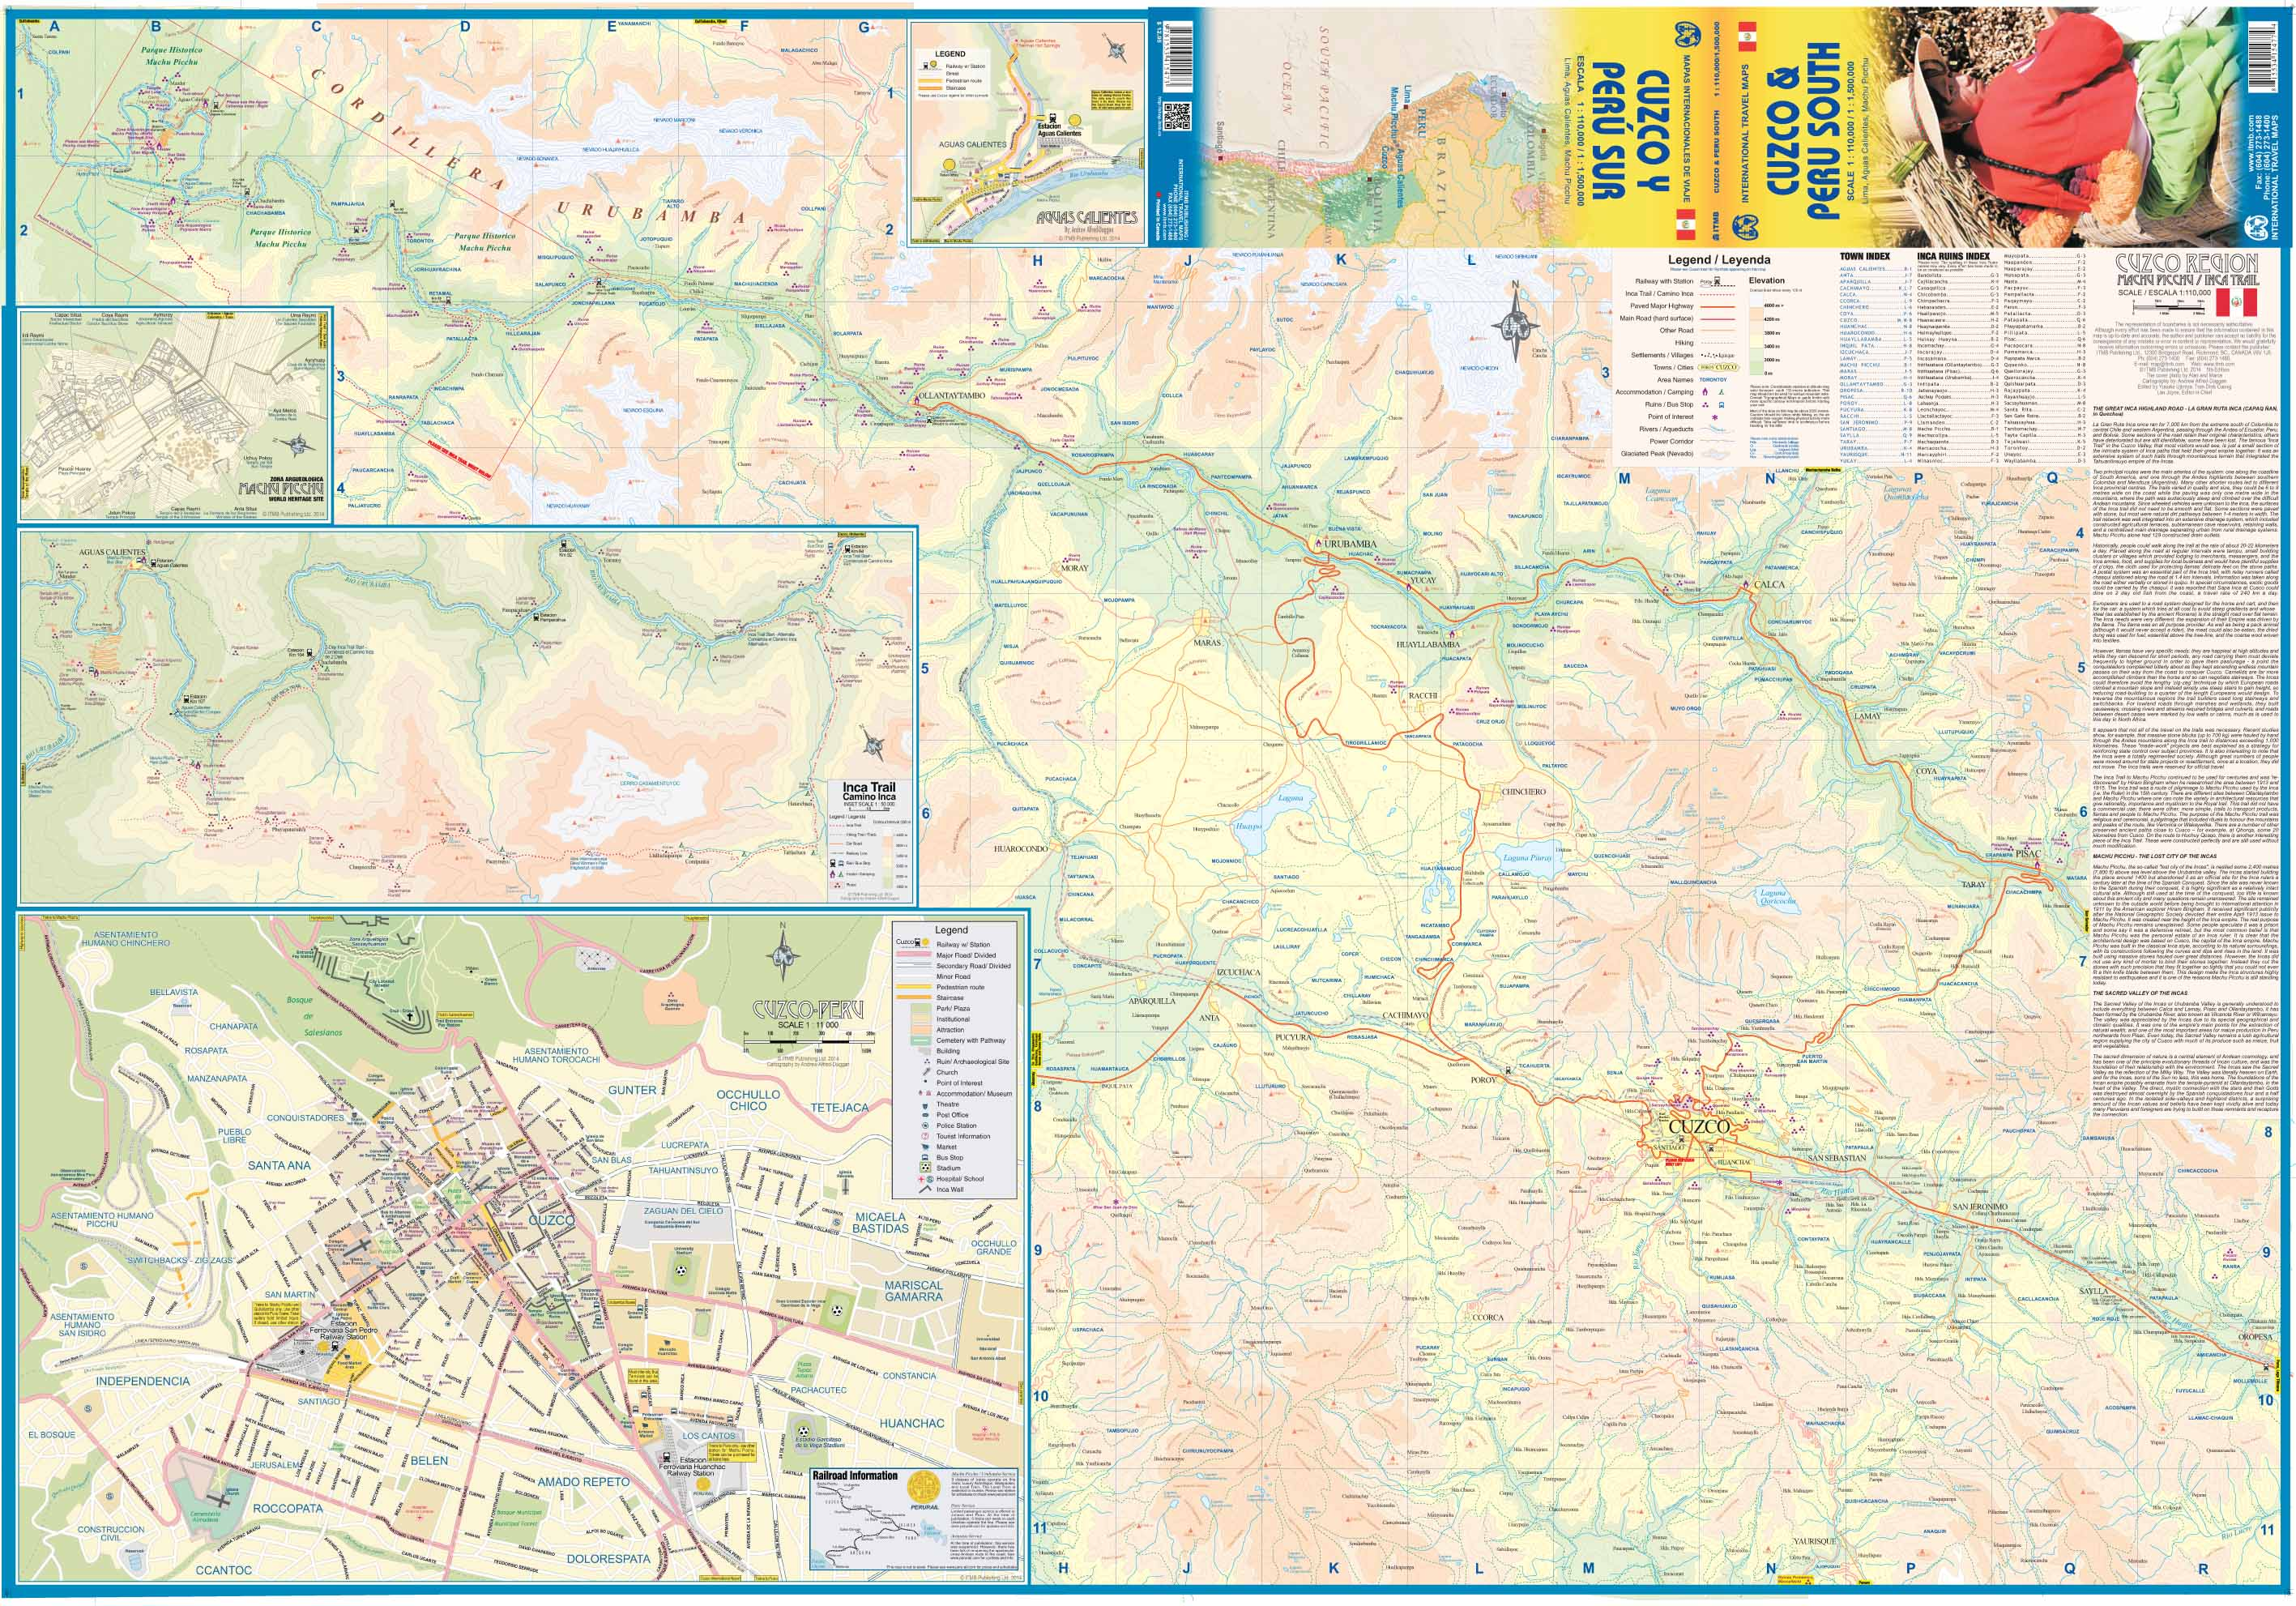 Maps for travel city maps road maps guides globes topographic maps publicscrutiny Image collections